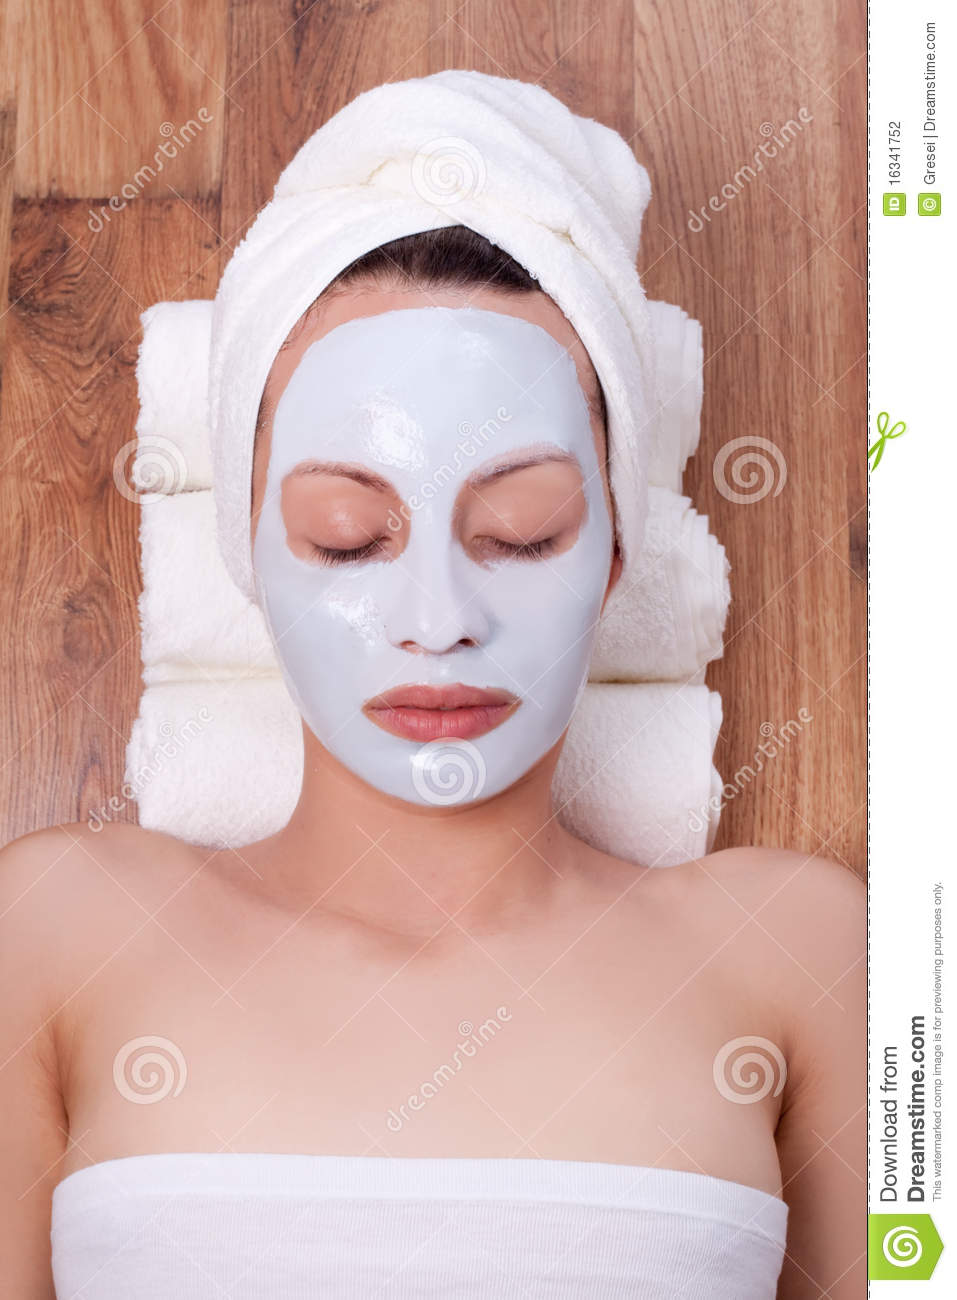 Stock Image Aroma Therapy Logo Illustration Representing Word Can Be Used My As Whole Parts Studios Massage Image34058461 besides Wellness Center Grand Hotela Adriatic Opatija 953 besides Marbella Tourisme furthermore Stock Photos Massage Logo Image23485153 in addition Stock Photography Woman Cosmetic Mask Her Face Image16341752. on plan for massage and spa